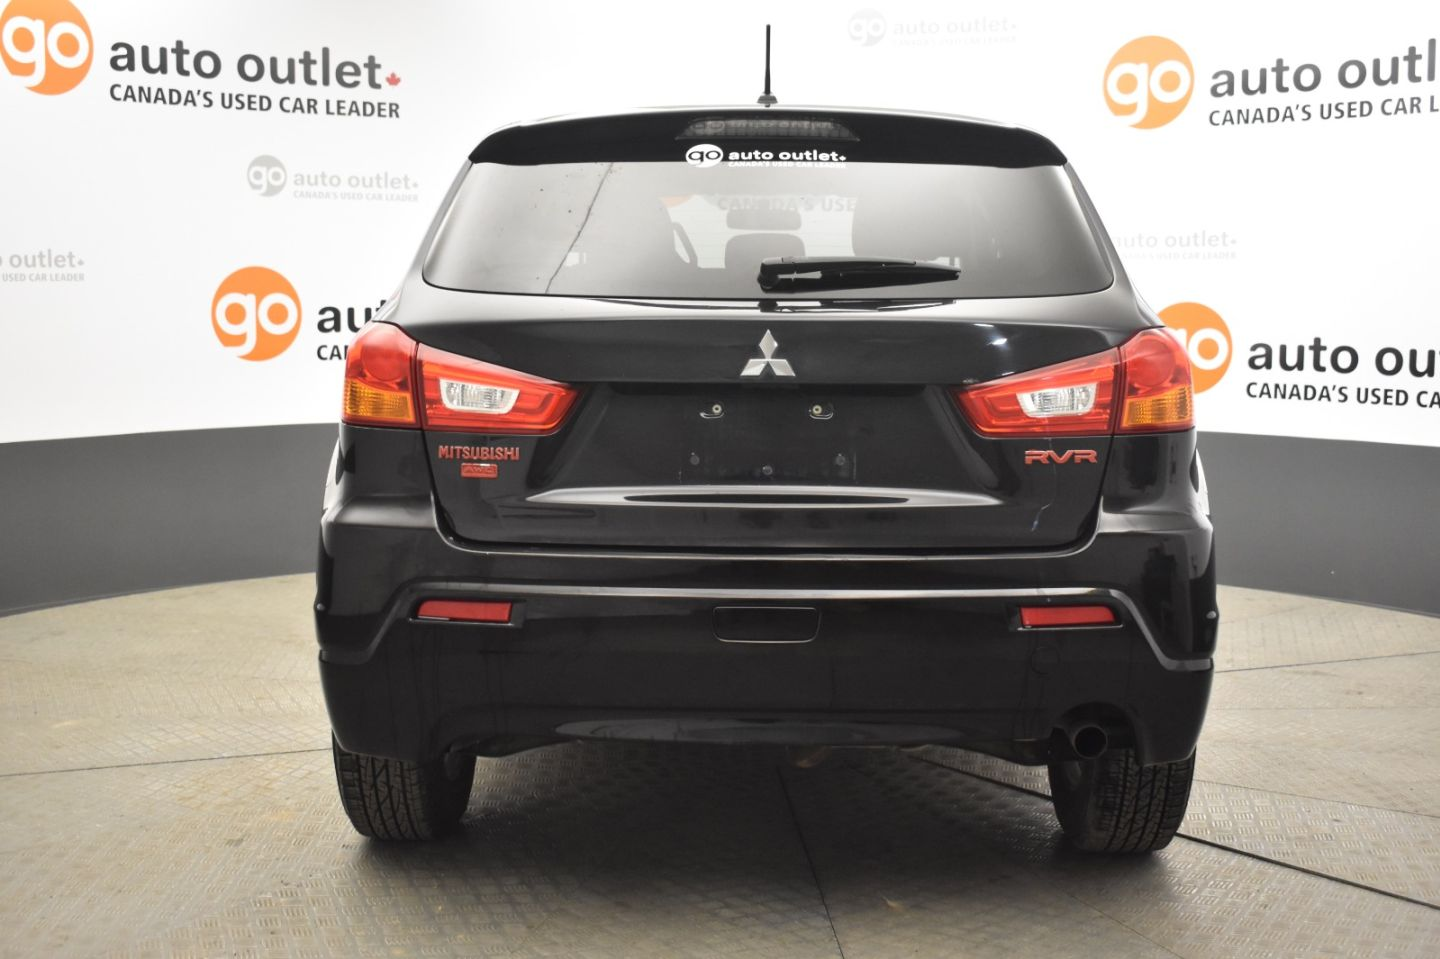 2012 Mitsubishi RVR SE for sale in Leduc, Alberta